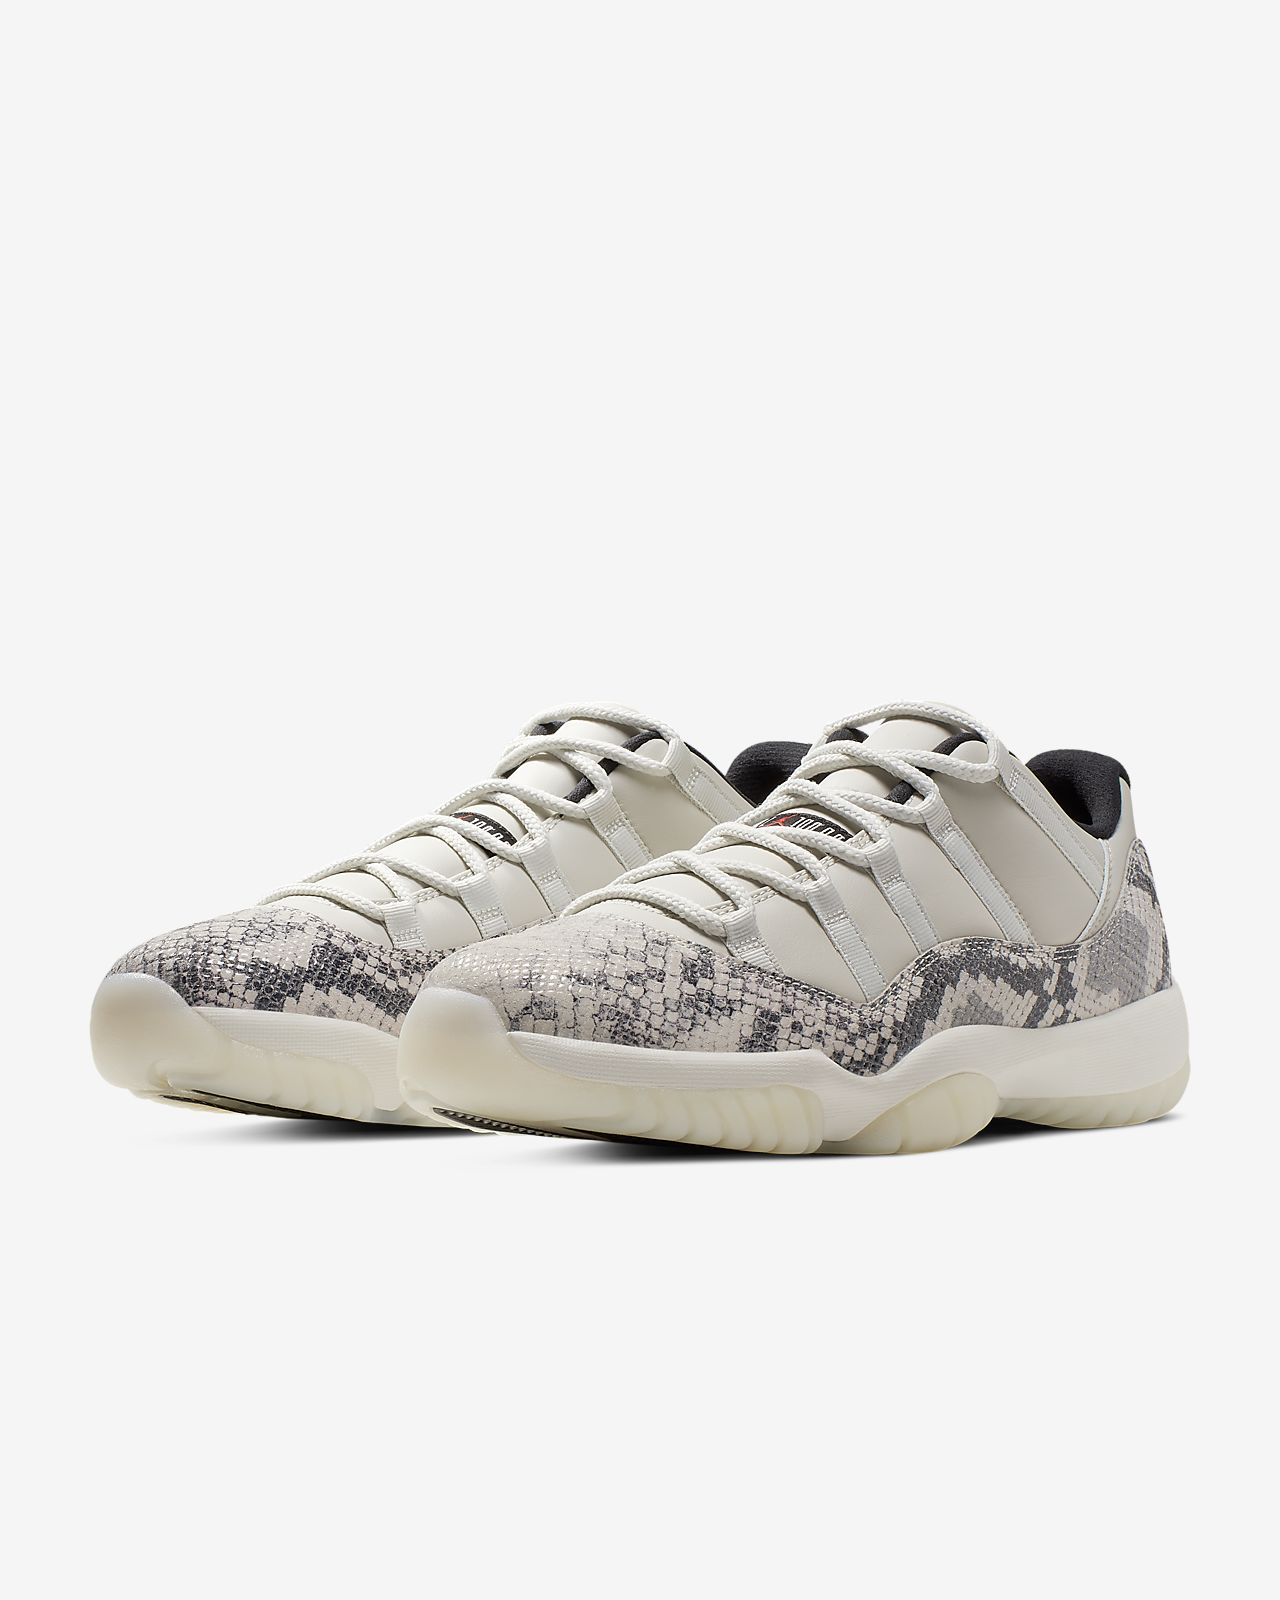 Air Jordan 11 Retro Low LE Men's Shoe